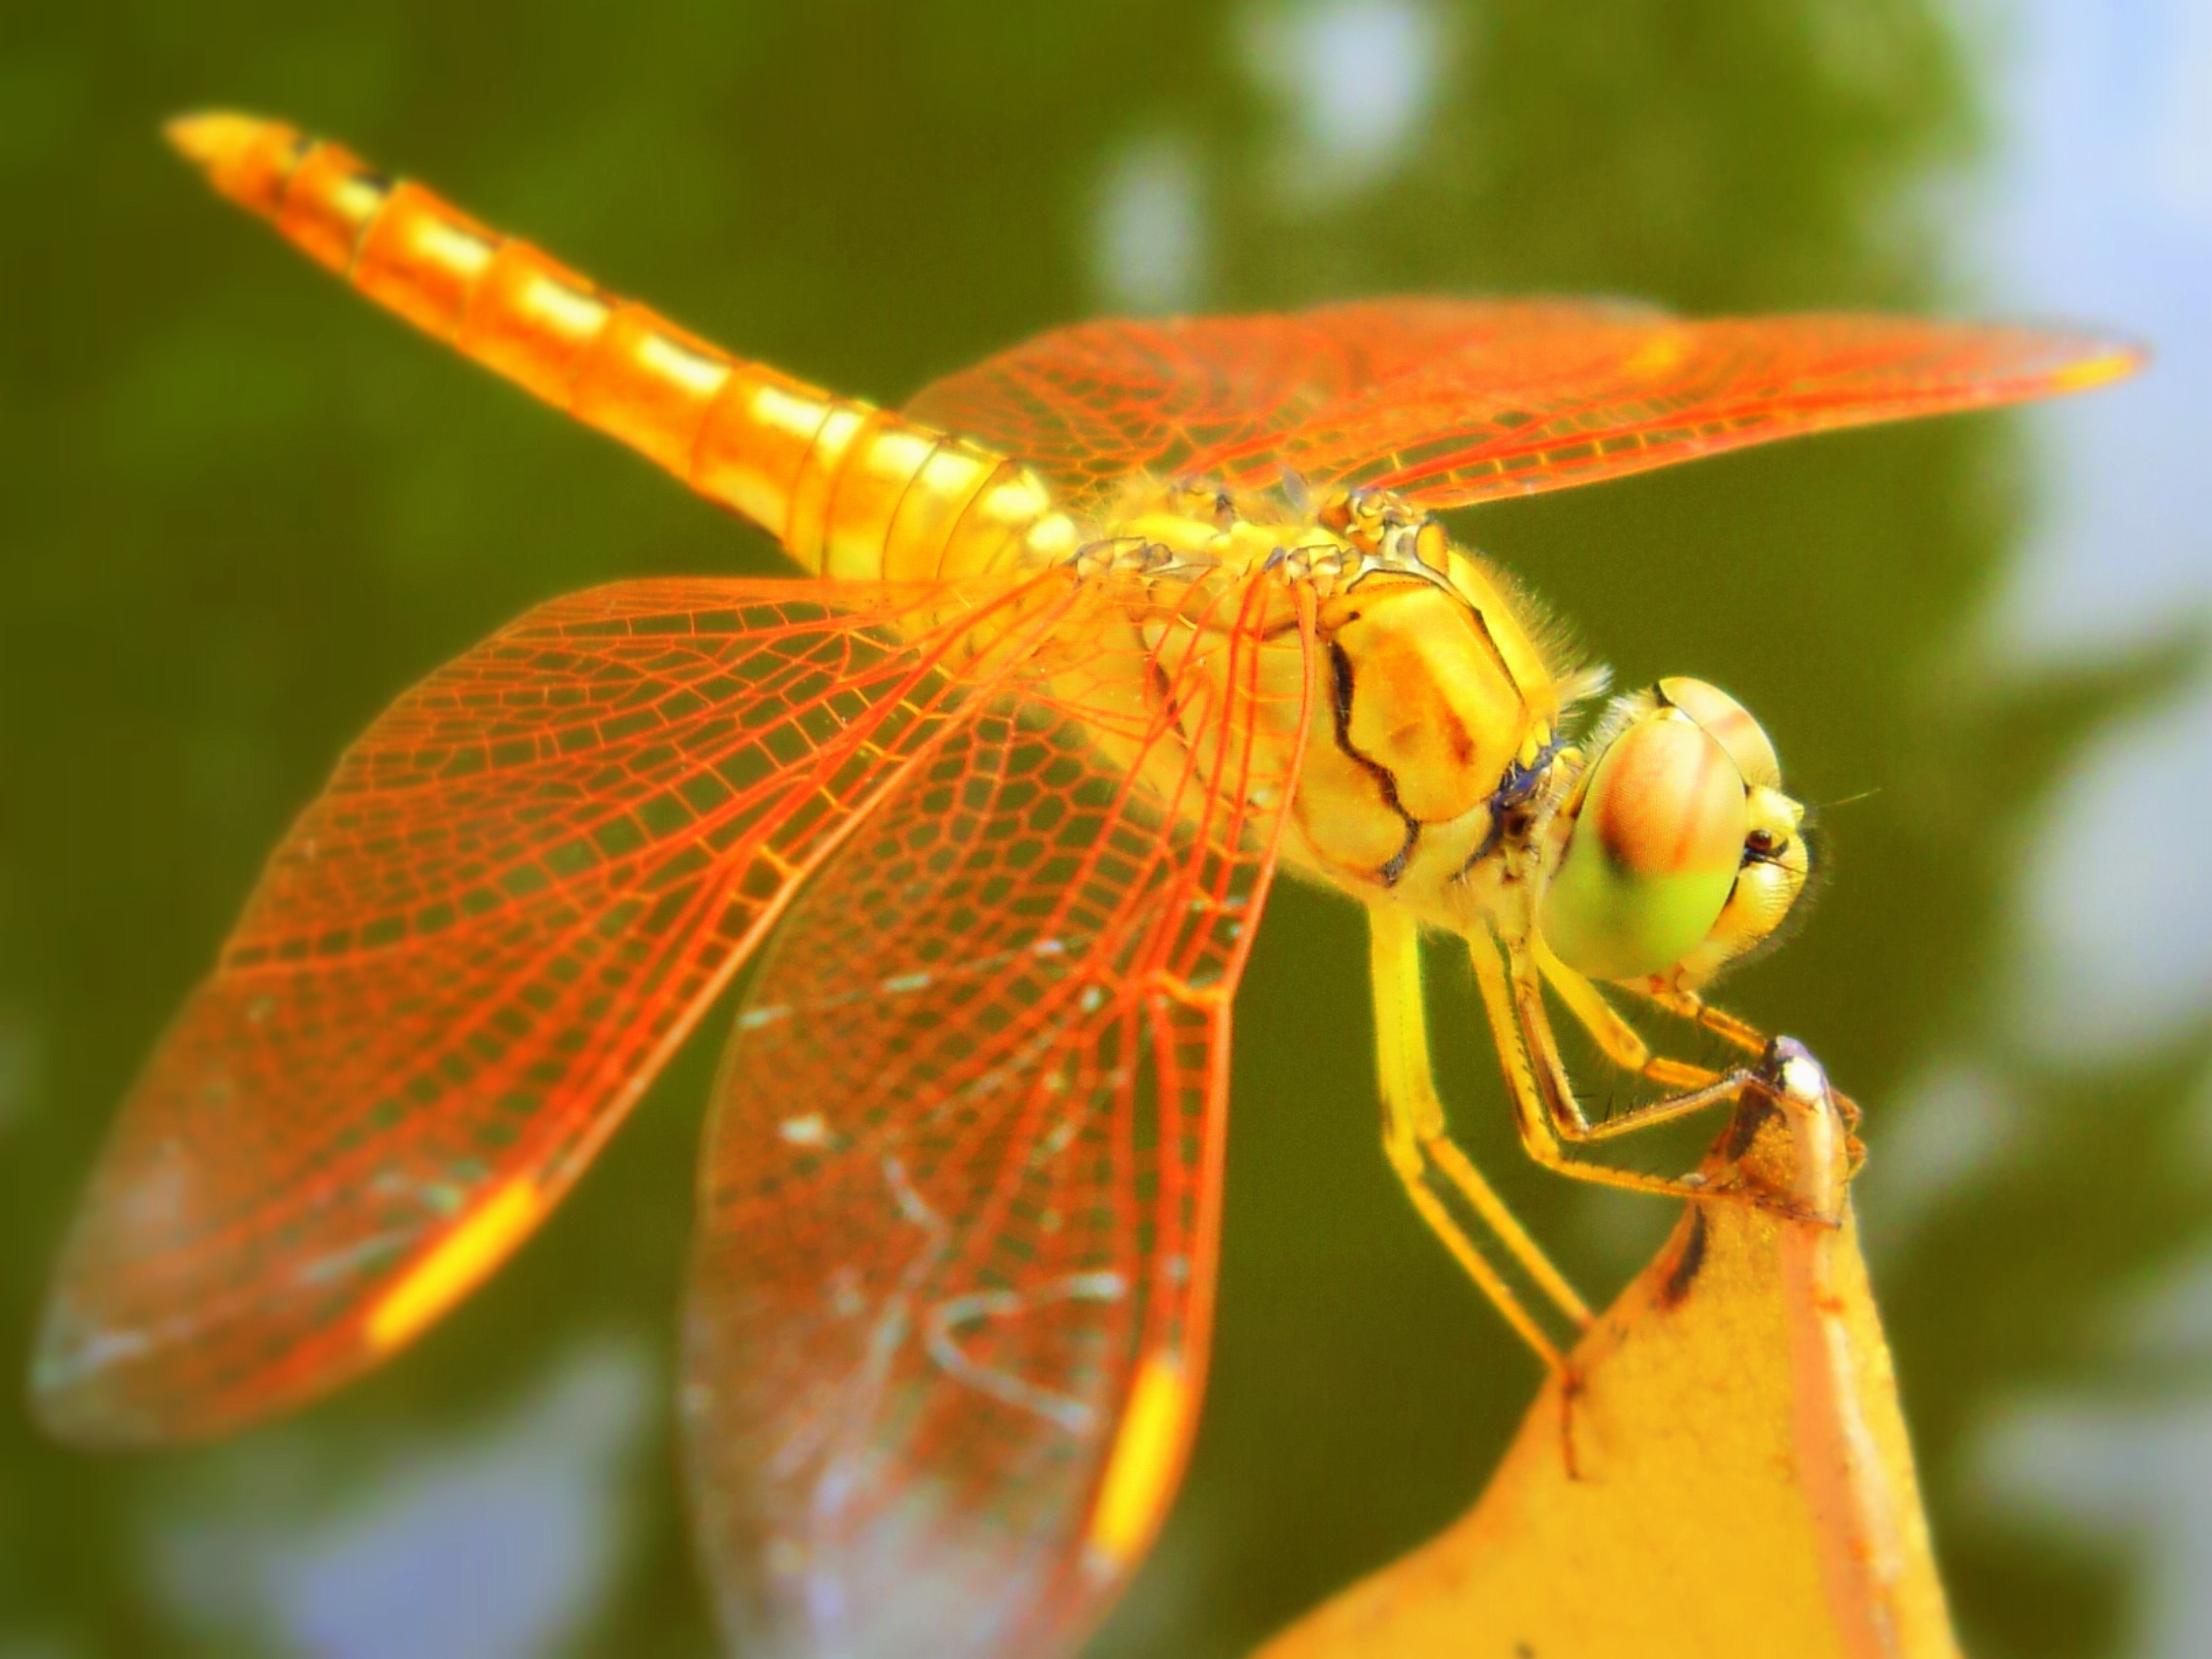 Wallpaper Quotes Iphone 6 Plus Dragonfly Computer Wallpapers Desktop Backgrounds